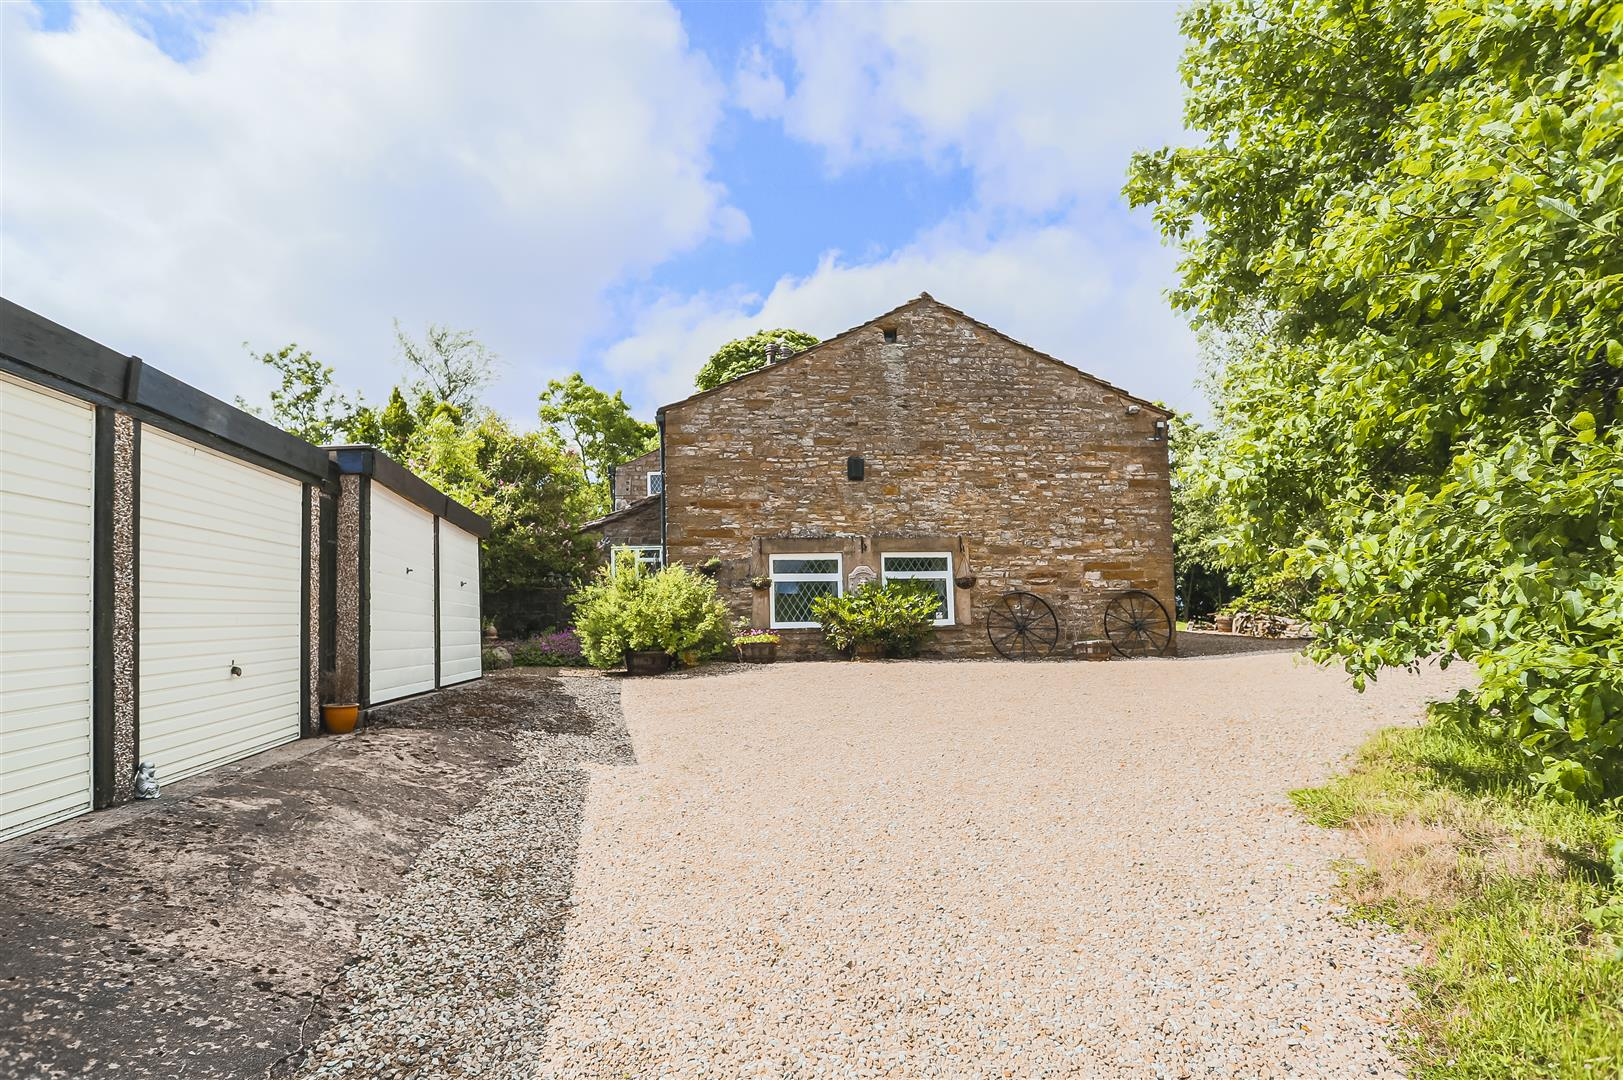 3 Bedroom House For Sale - Image 47